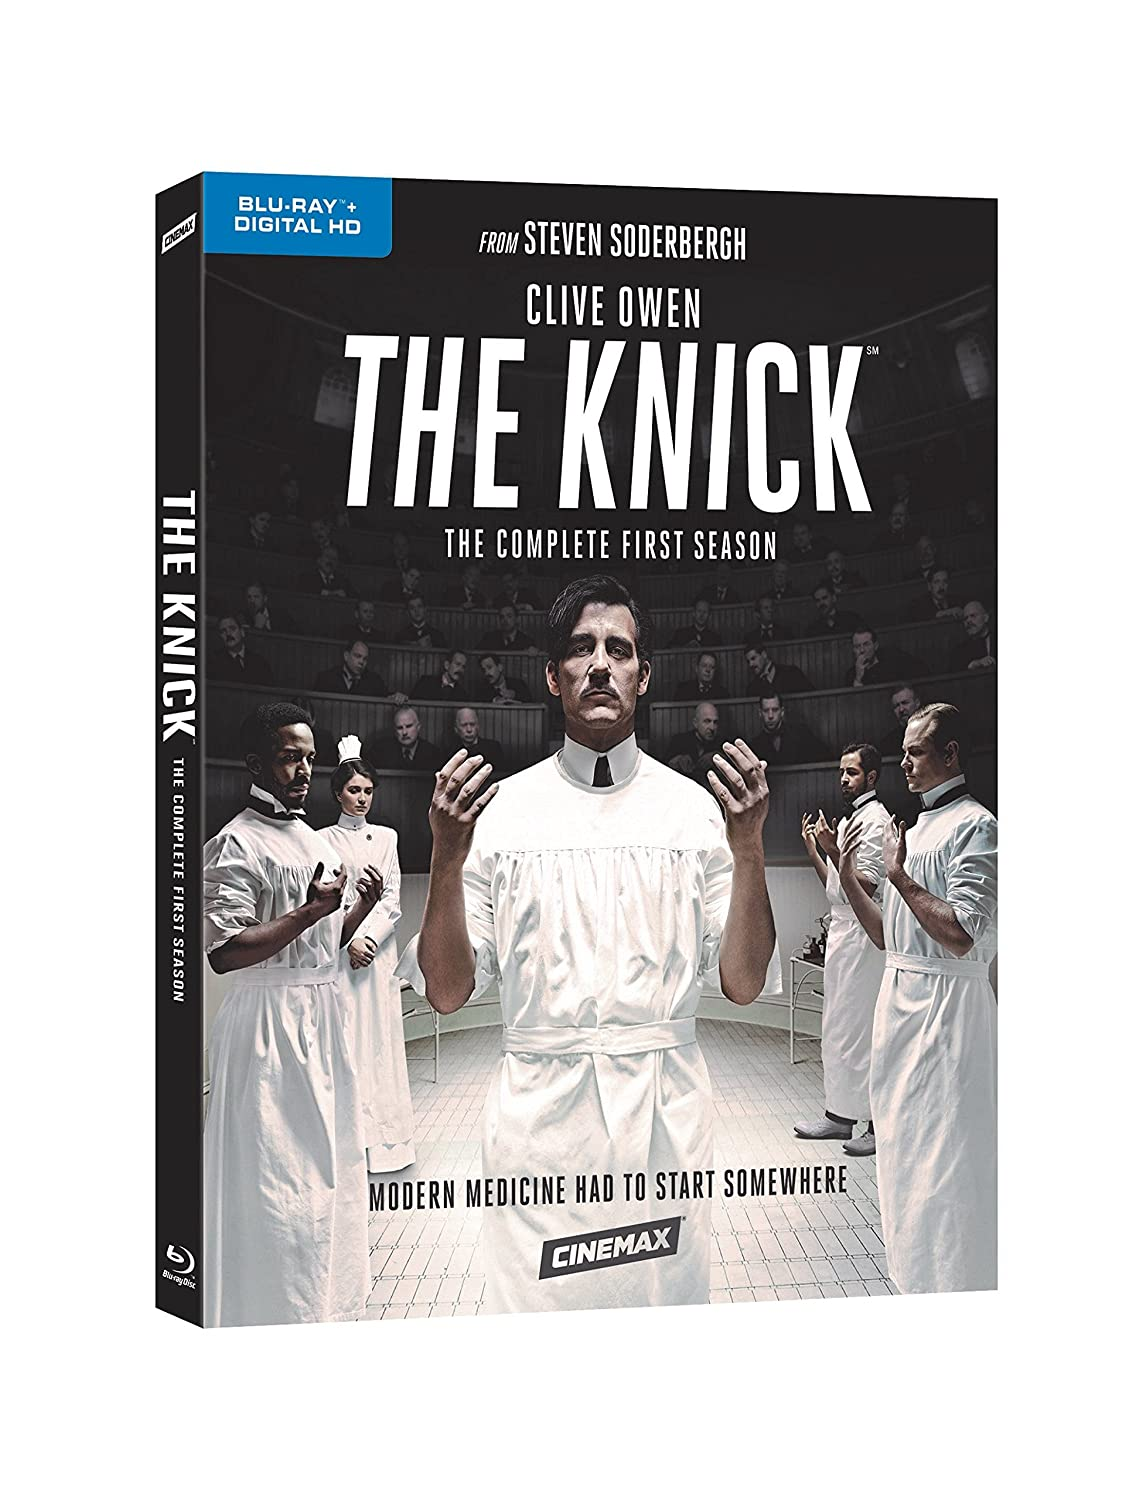 com the knick the complete first season blu ray  com the knick the complete first season blu ray digital hd various movies tv